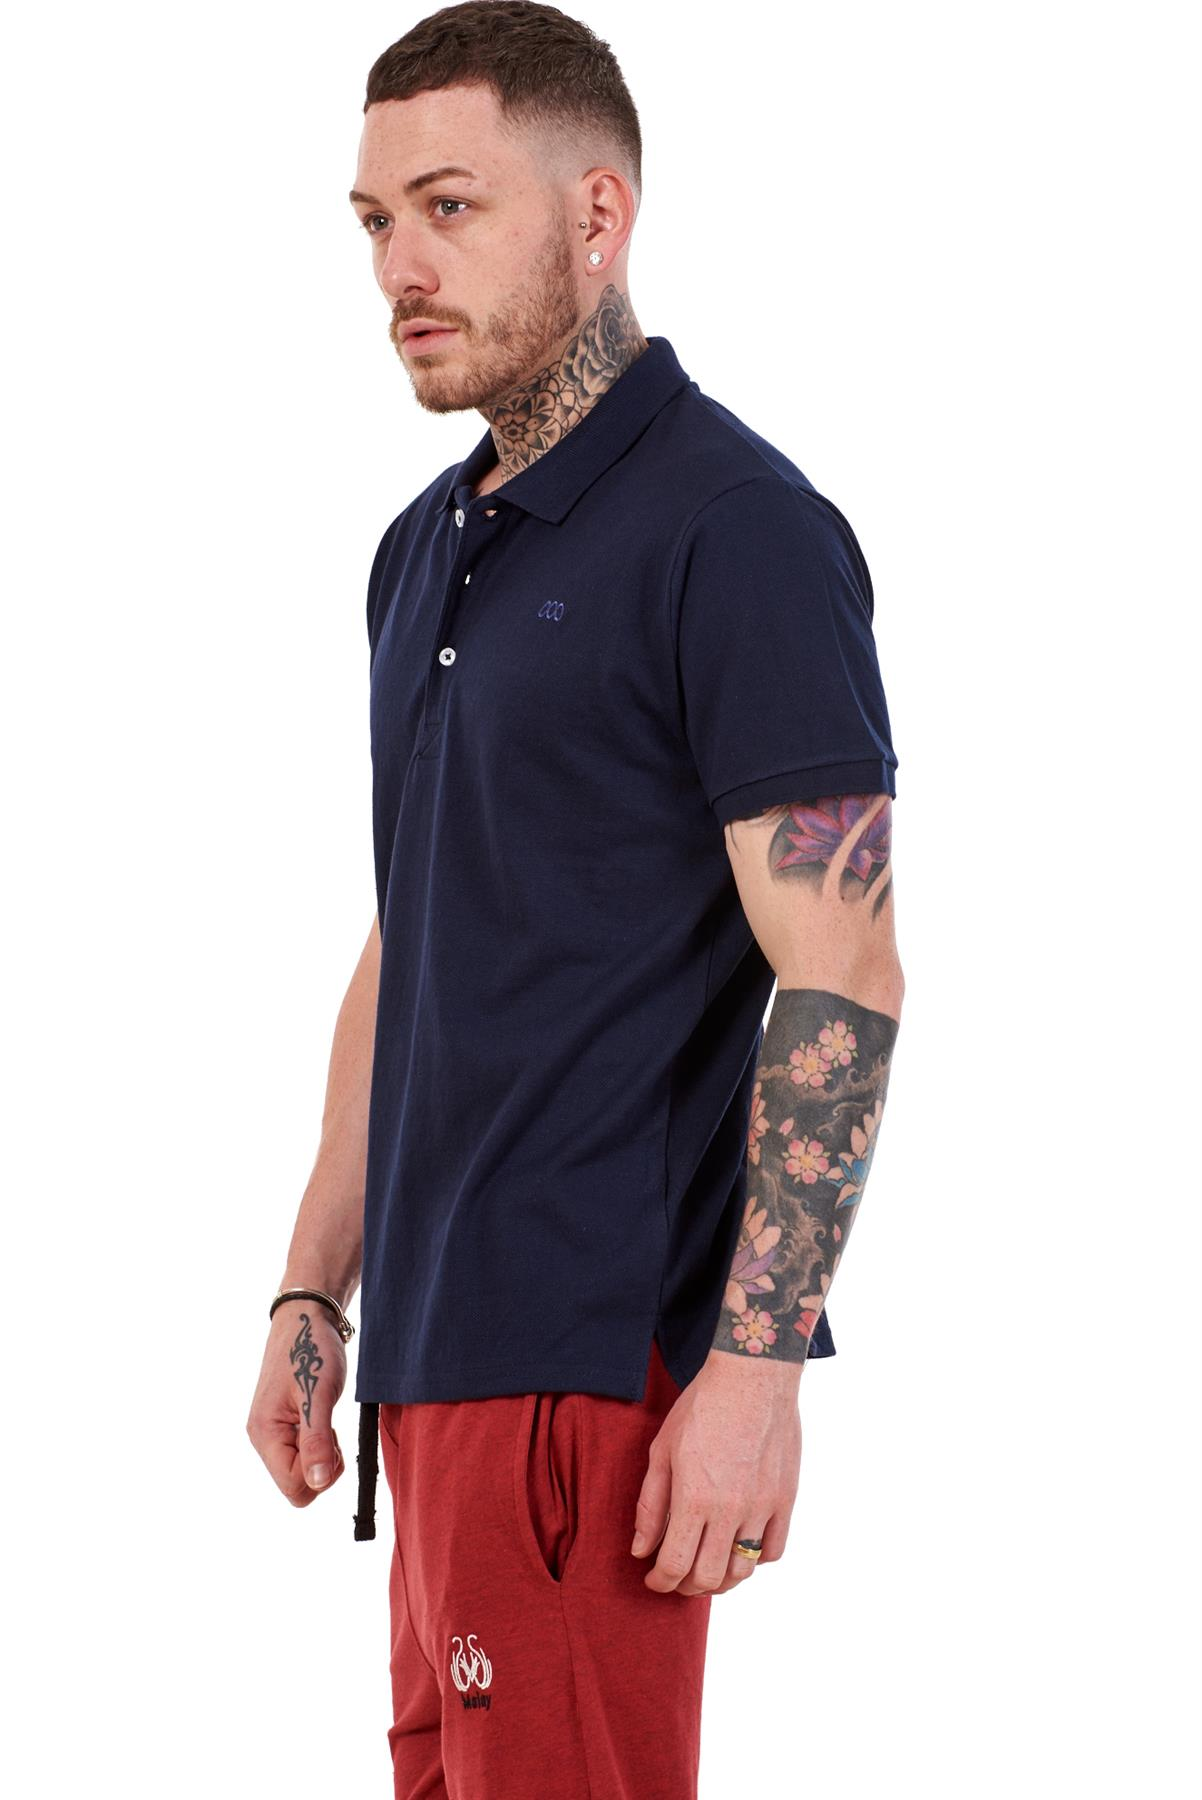 Mens-Plain-Solid-Polo-Cotton-T-Shirts-Regular-fit-Casual-Formal-Shirt-Top-M-XXL thumbnail 24